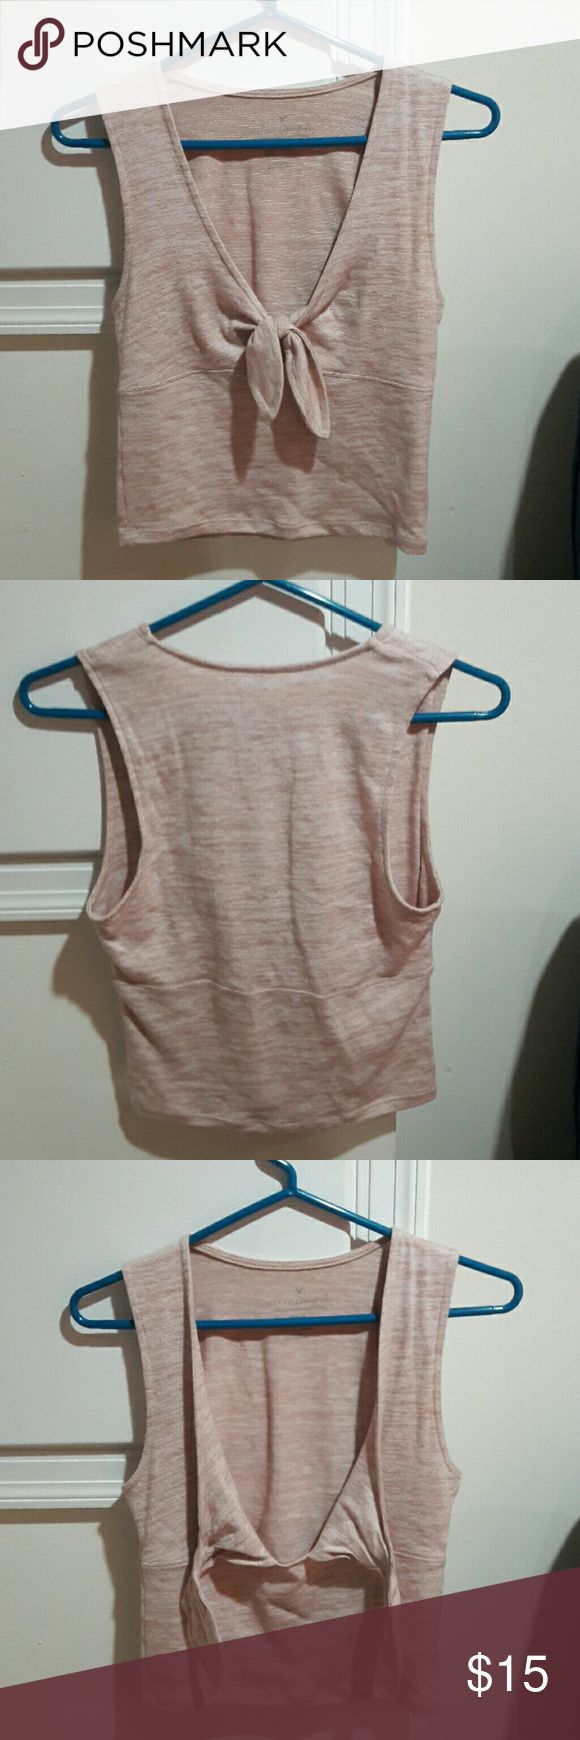 Tie-front Tank Top A cute powder pink top for warm weather! The front can be tied and untied easily. Its length is between that of a crop top and a normal top, meaning it tends to show a little belly. (;  Great quality. Soft. Little to no signs of wear.  tags; girly summer summery teen vacay vacation beachy beach scoop neck low cut American Eagle Outfitters Tops Tank Tops